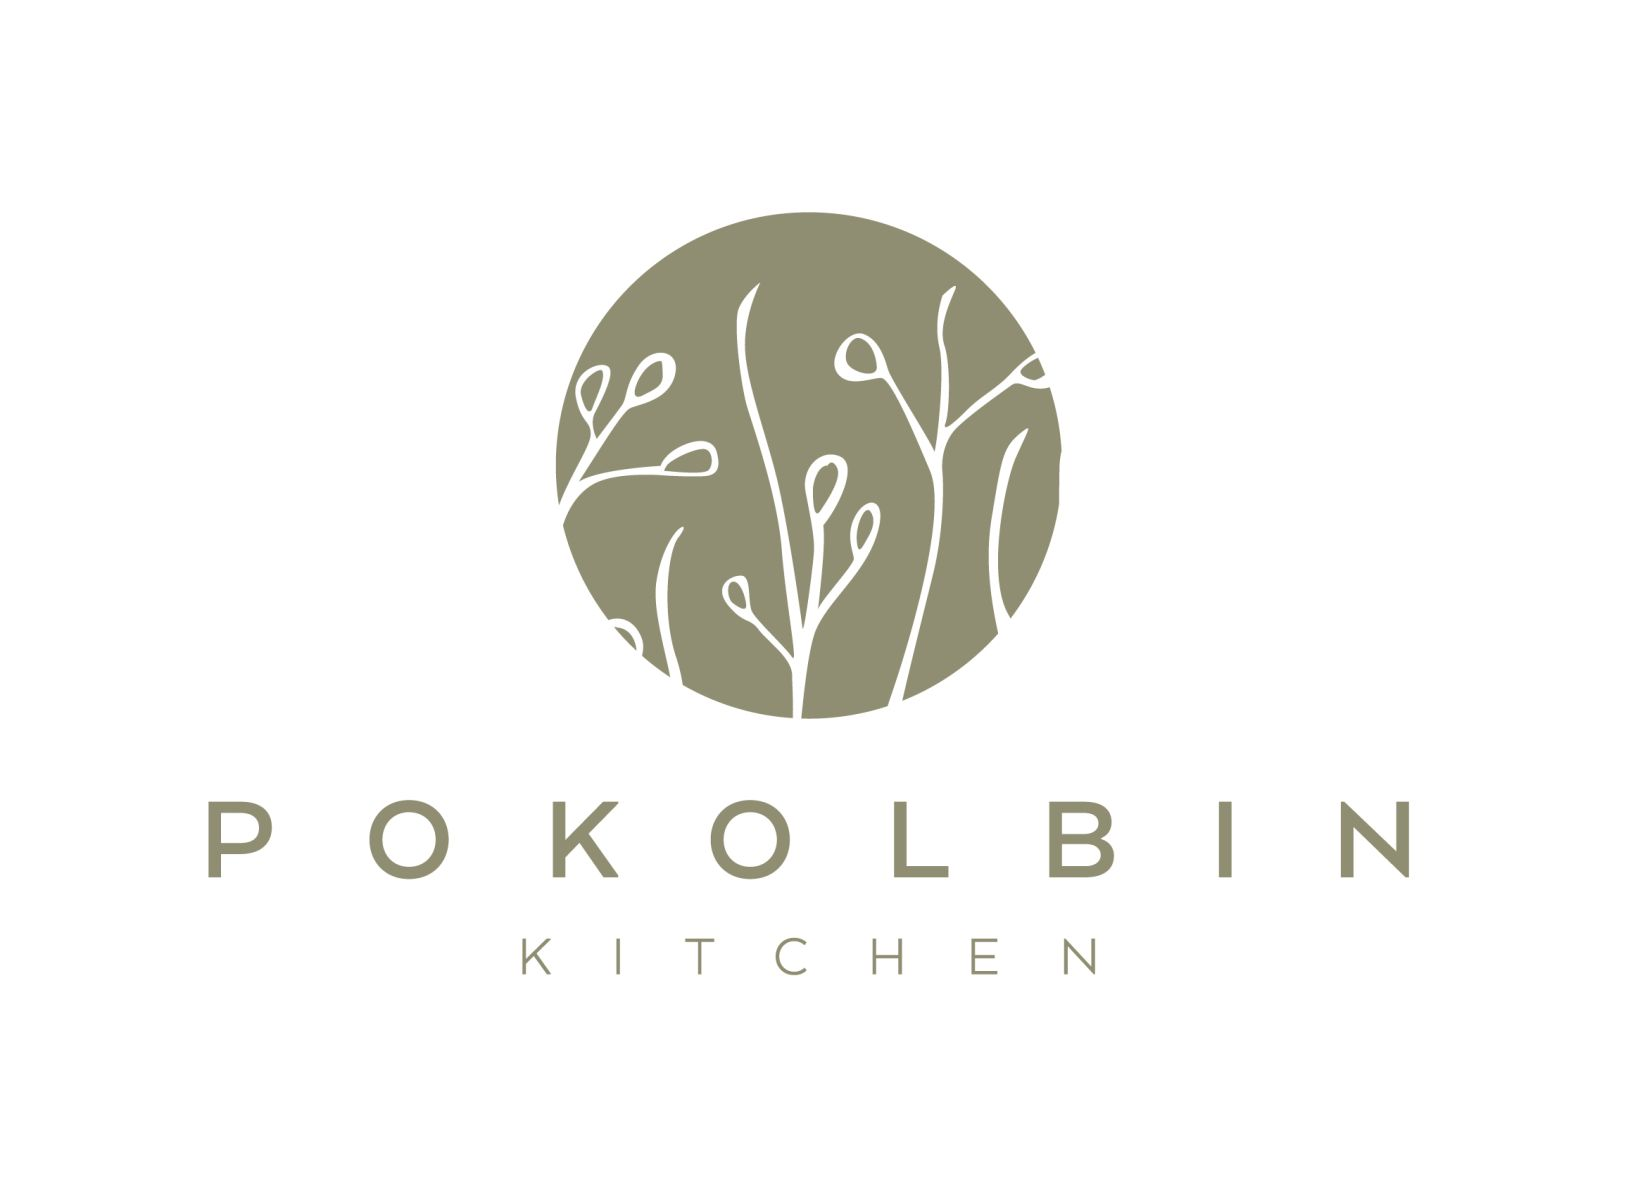 Pokolbin-kitchen-logo-design